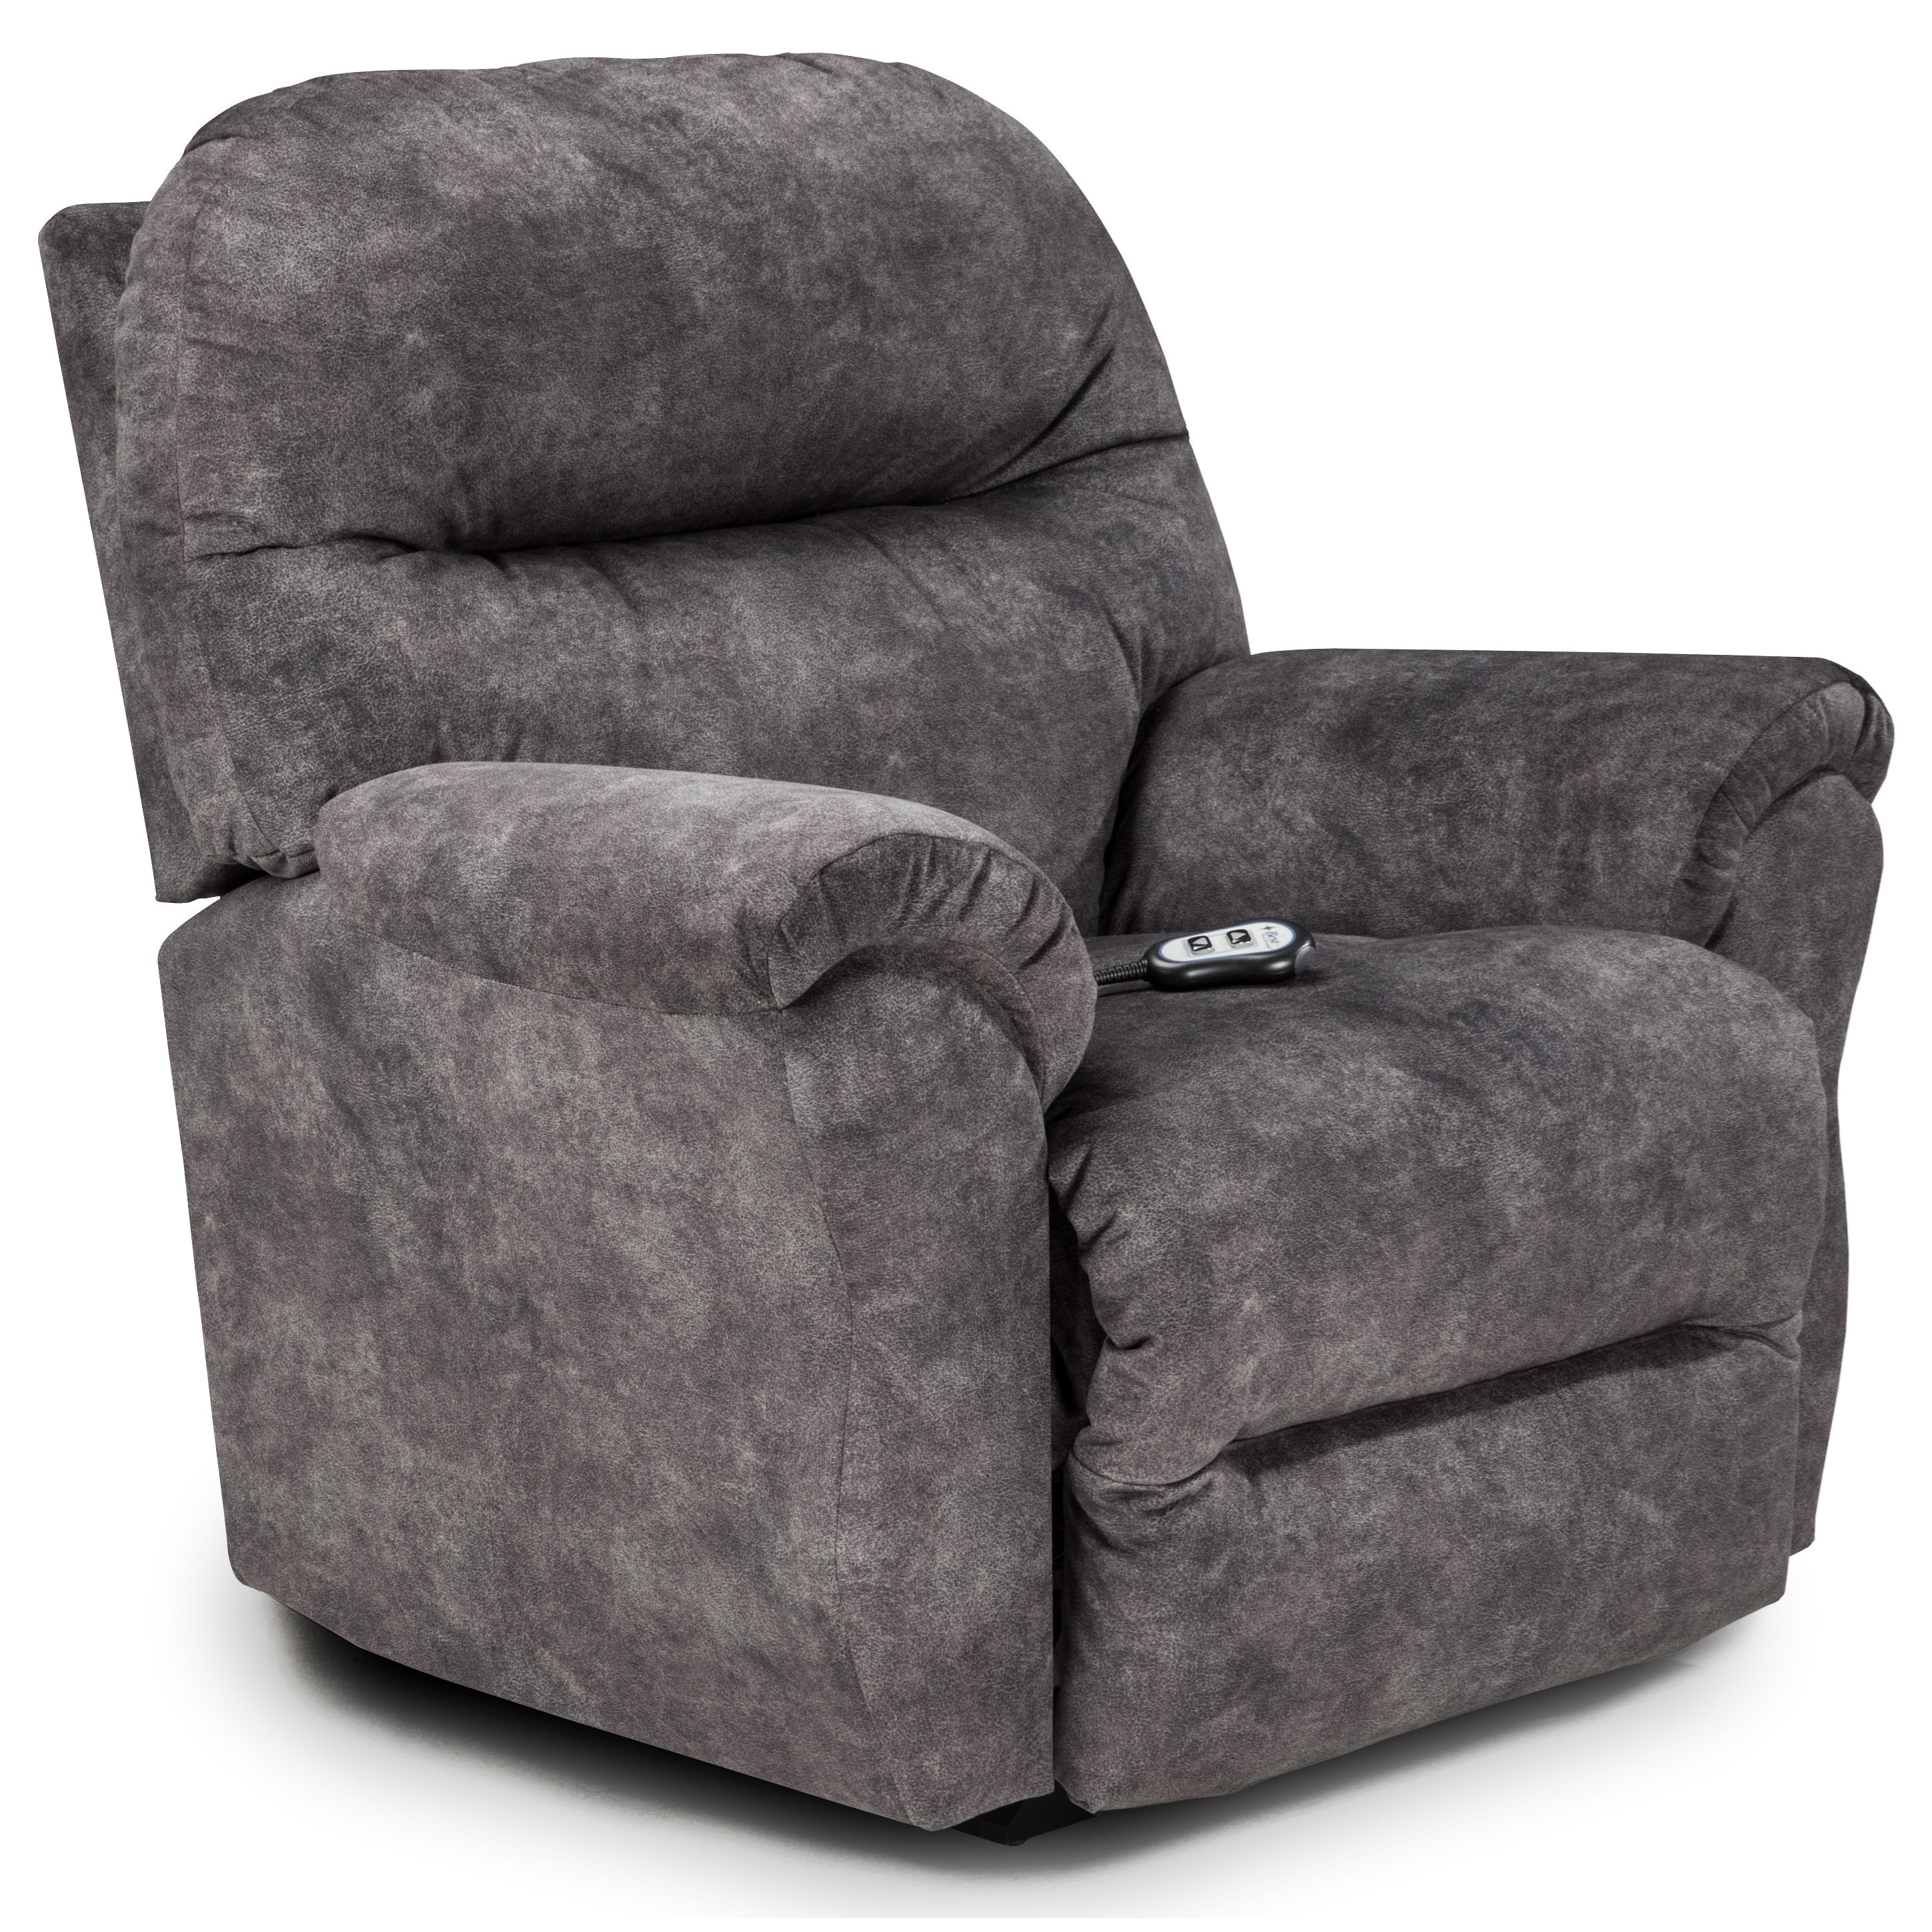 Best Home Furnishings Recliners - Medium Bodie Power Wallhugger Recliner - Item Number: 8NP14